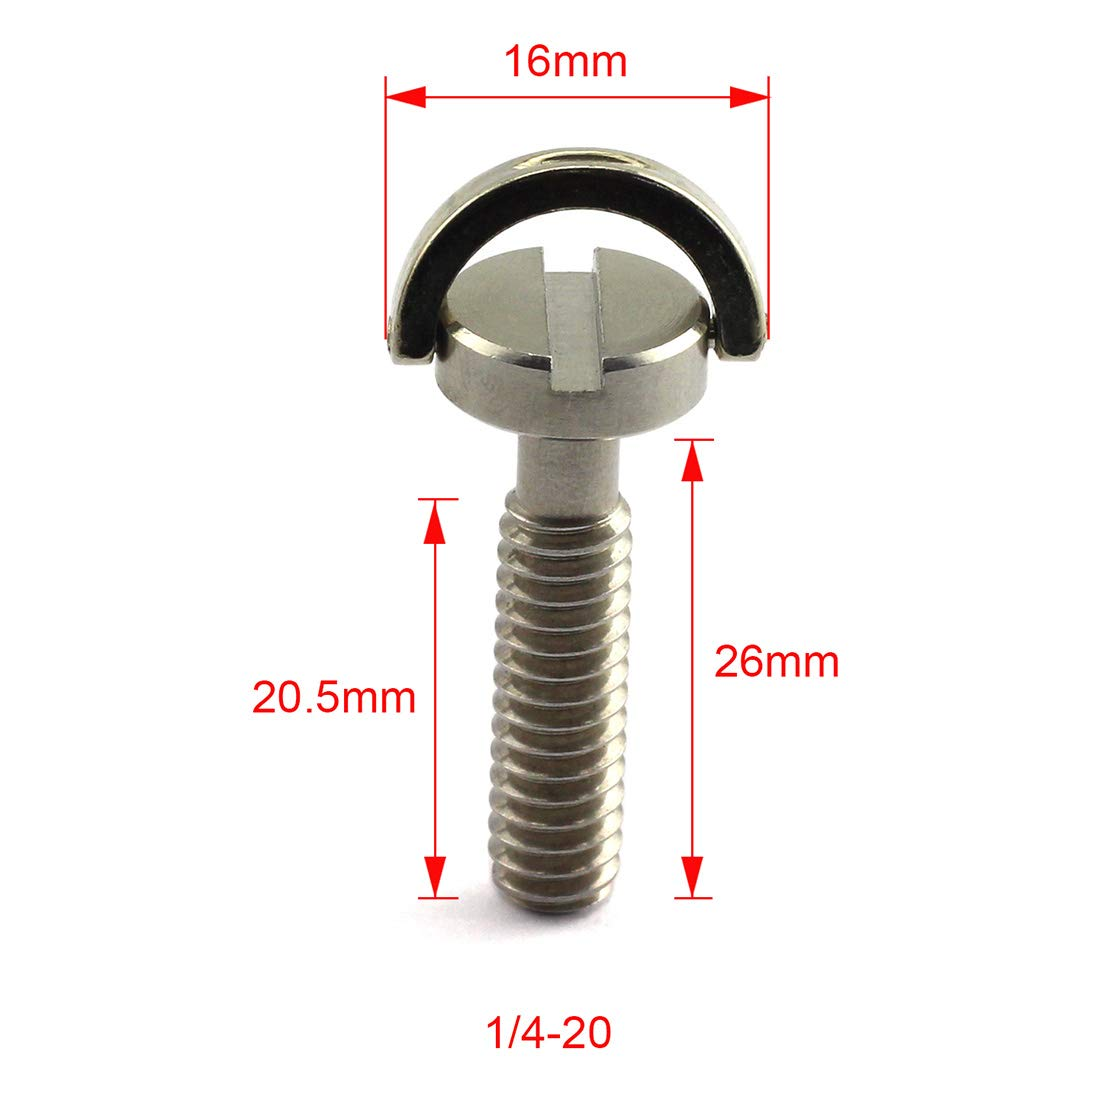 HJ Garden 2pcs 1//4-20 Thread D-Ring Stainless Steel Camera Fixing Screws for Camera Tripod Monopod QR Plate,D Shaft Quick Release Plate Mounting Screw 10mm Length